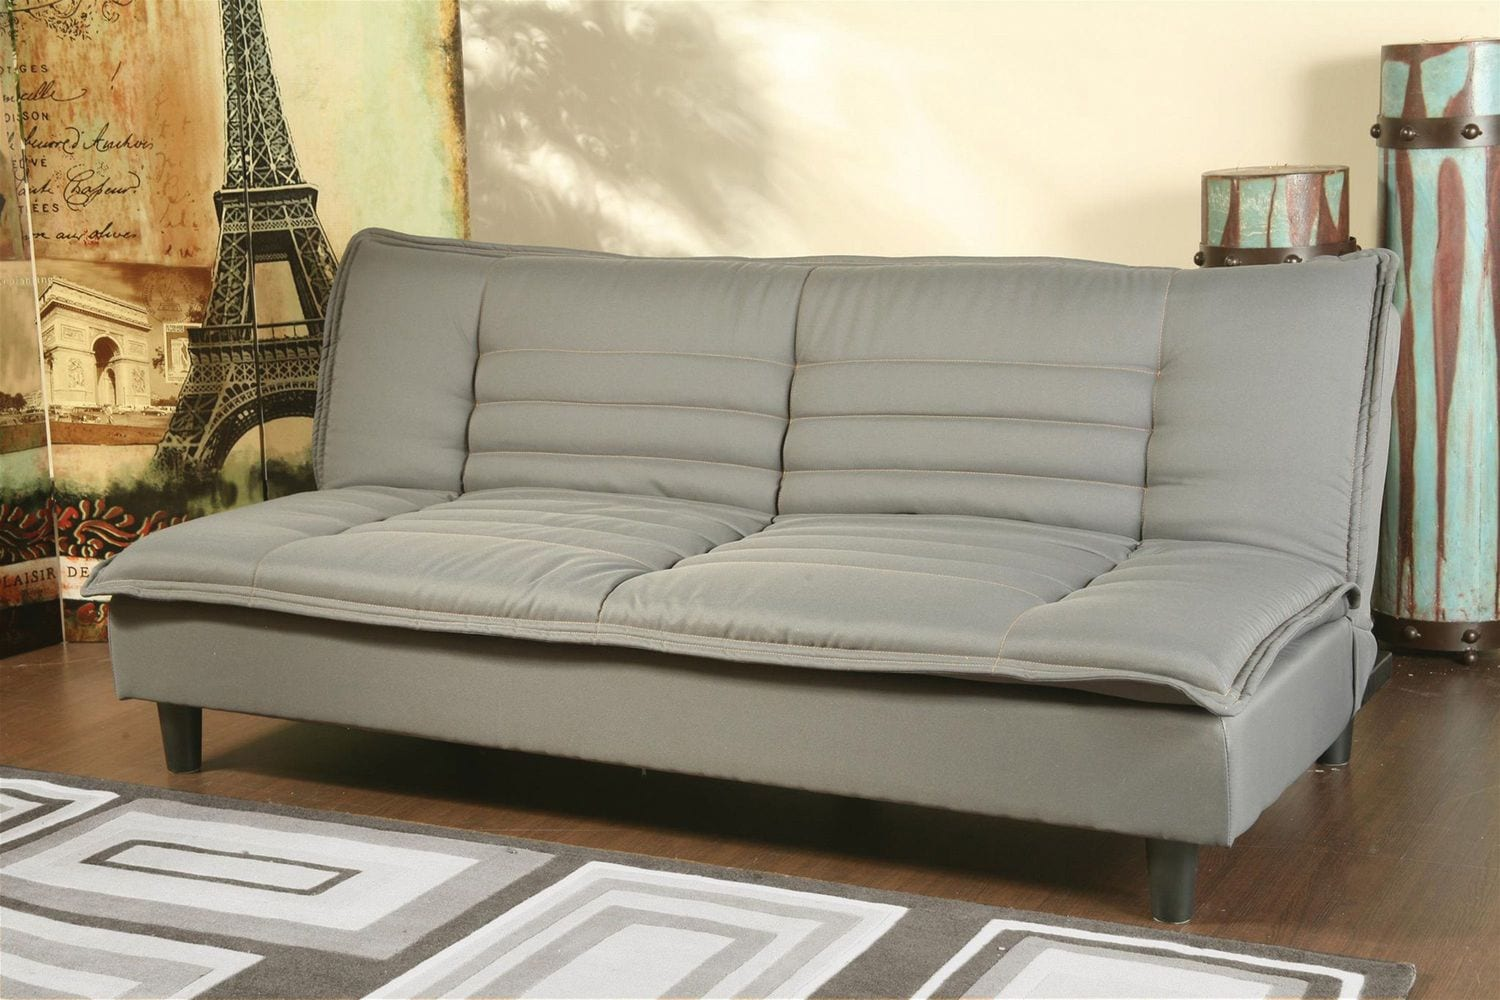 Living room furniture lombard convertible sofa gray